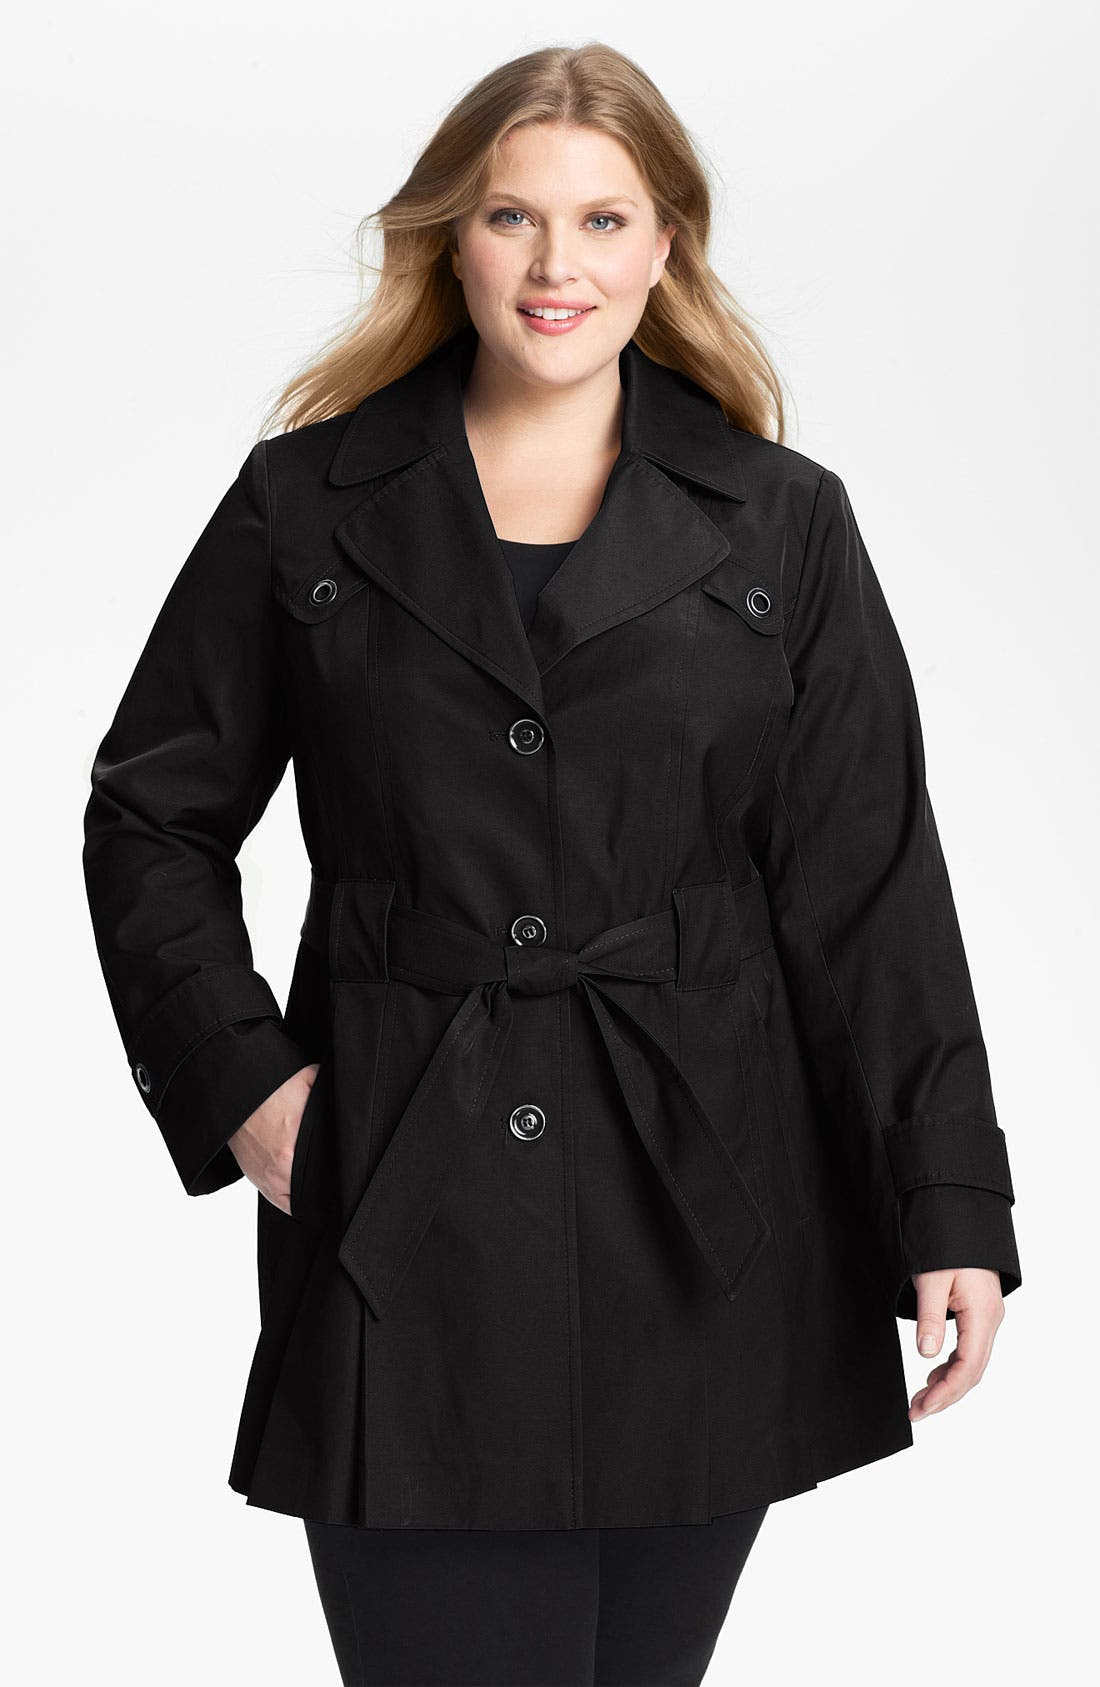 Alternate Image 1 Selected - Via Spiga Pleated Trench Coat (Plus Size)